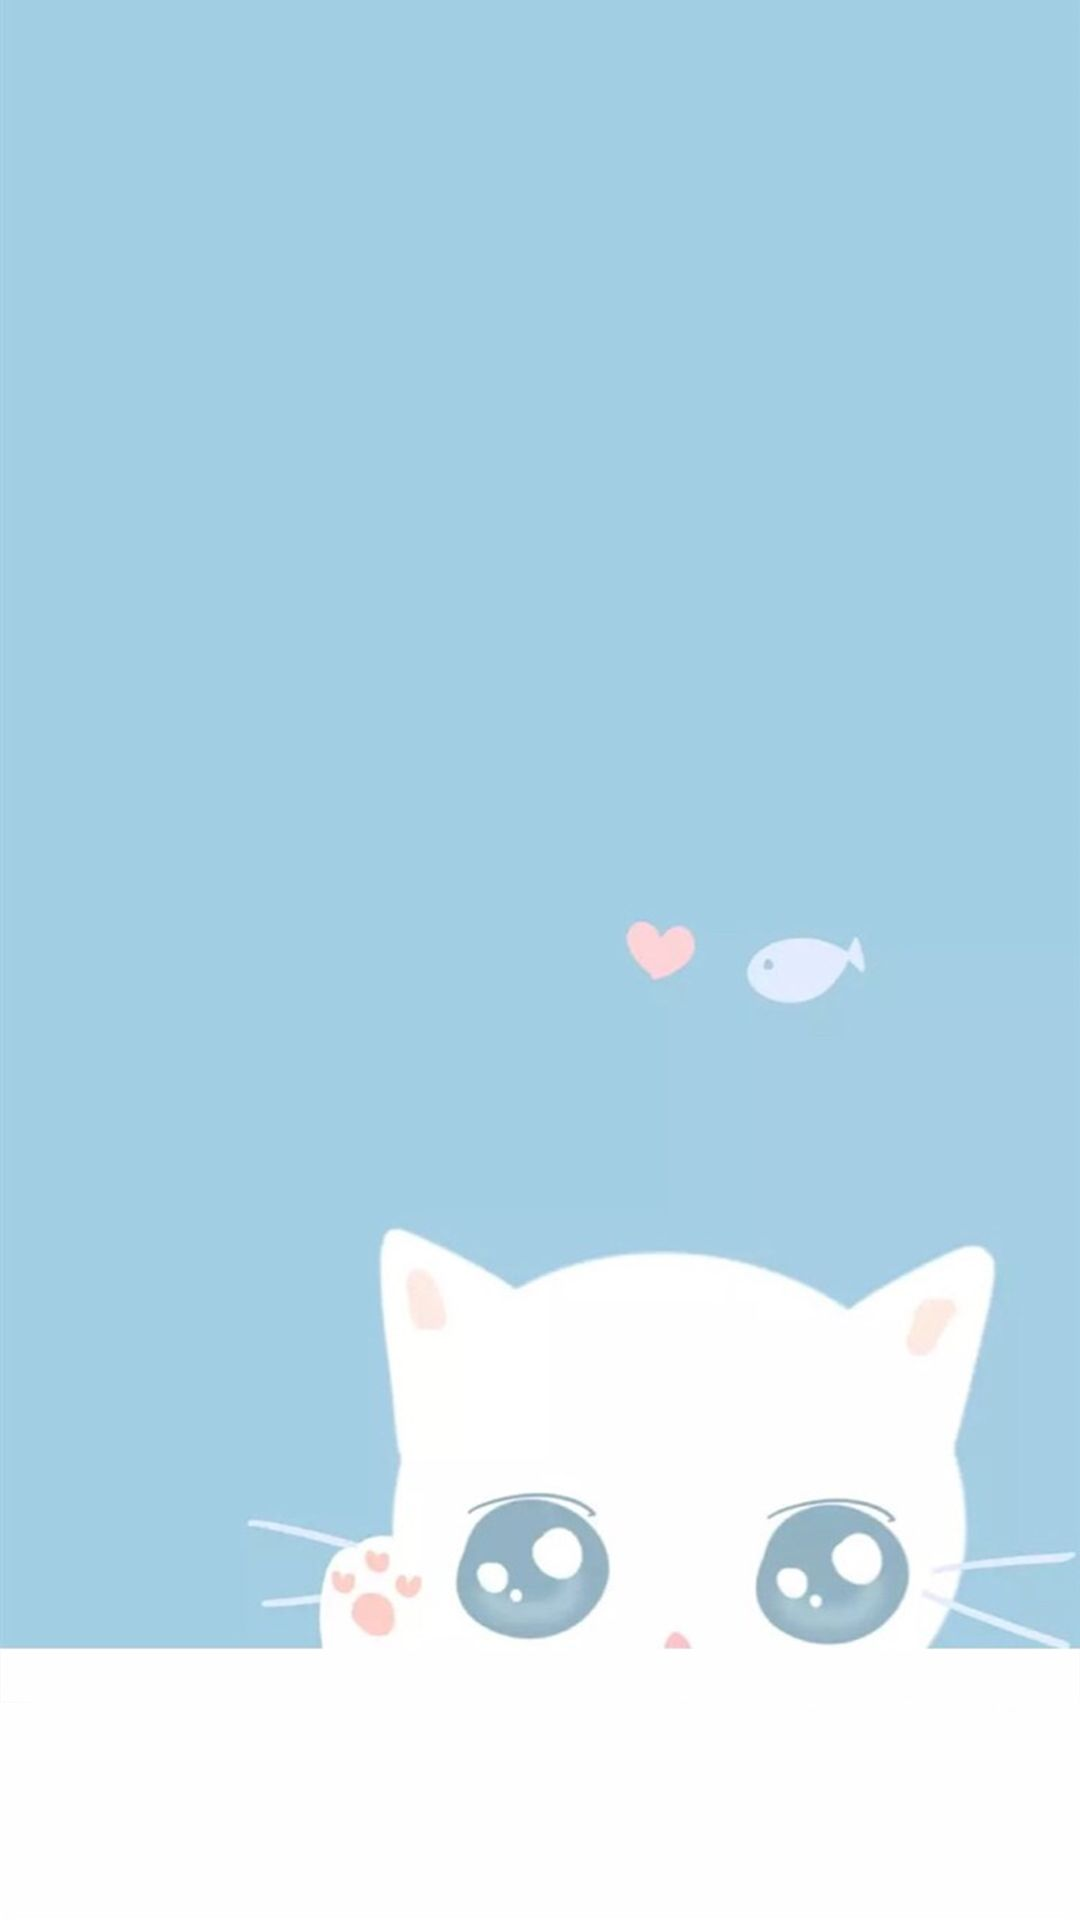 Crazy Cute Wallpapers Photo Iphone Wallpaper Cat Cute Wallpaper For Phone Cute Blue Wallpaper